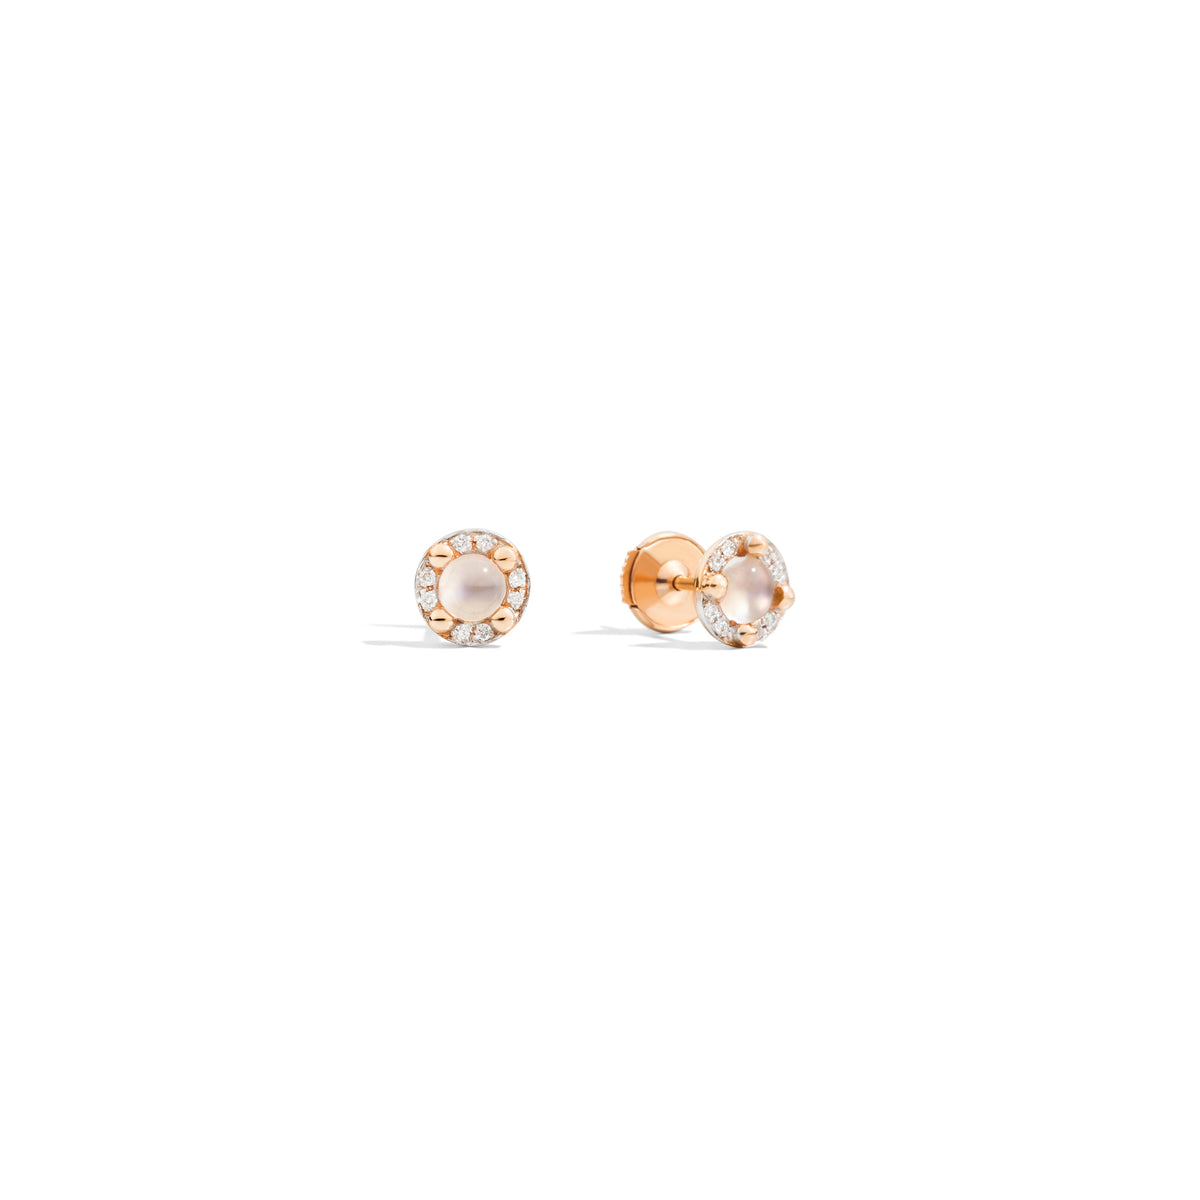 M'ama non M'ama Earrings in 18k Rose Gold with Moonstone and Diamonds - Orsini Jewellers NZ